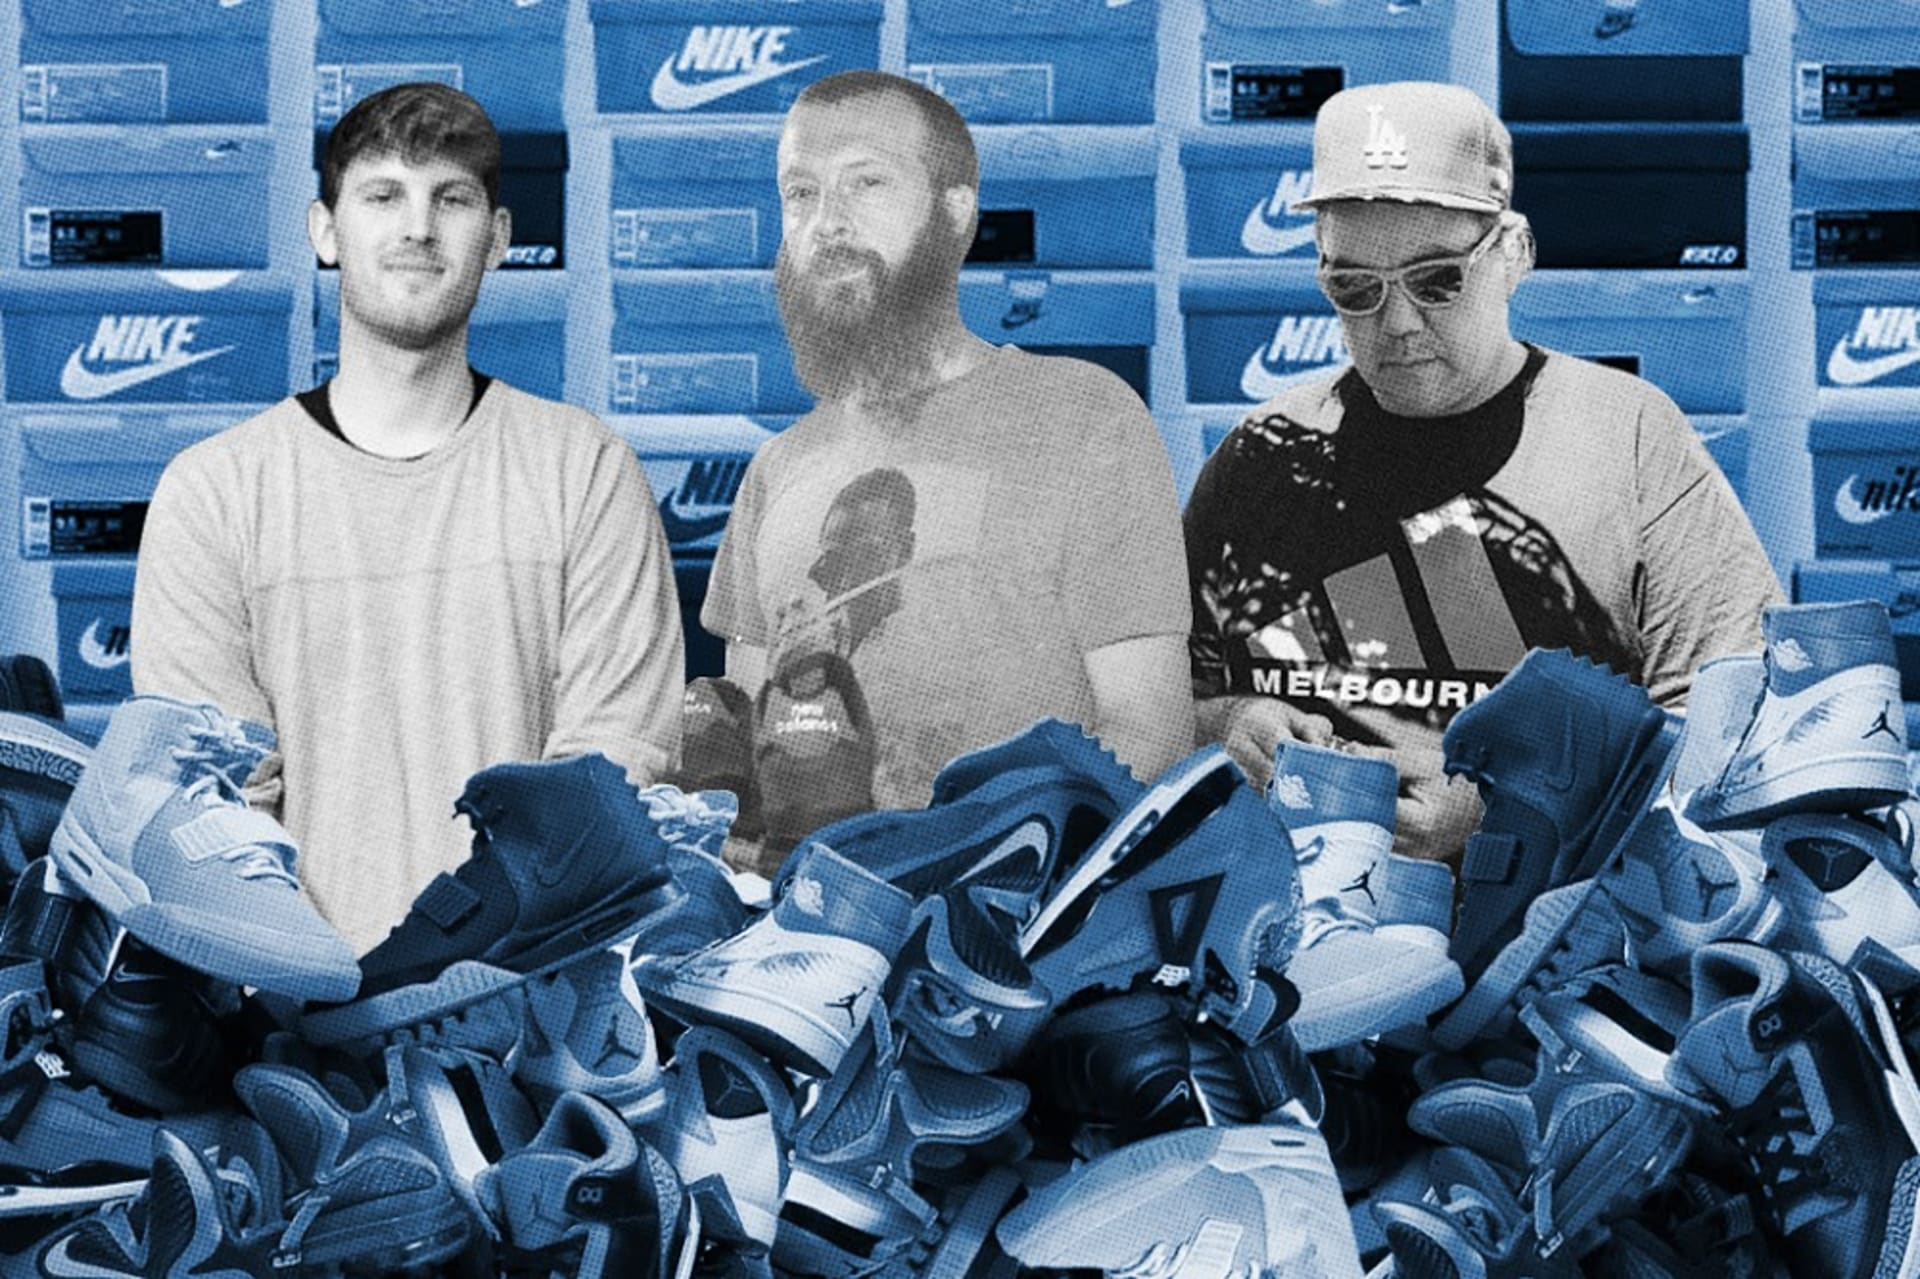 d6c9d60ca The 15 Most Influential People in Sneaker Media Right Now